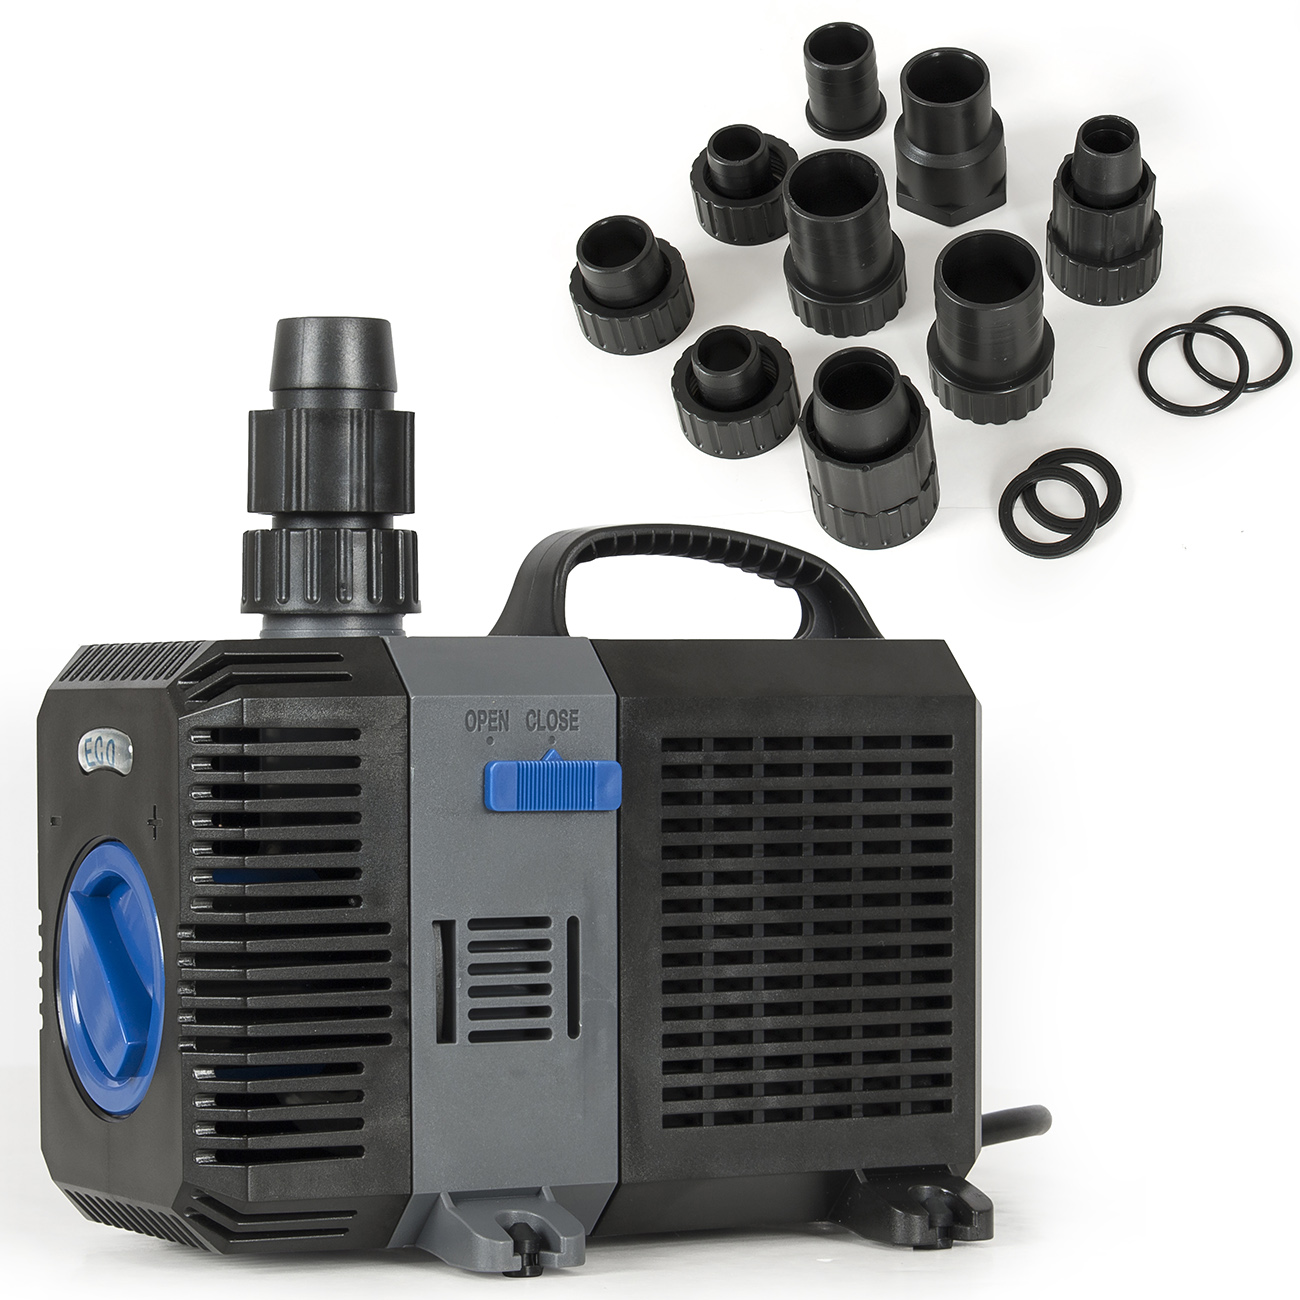 Submersible fountain 2100 gph pond pump waterfall koi for Submersible pond pump with filter